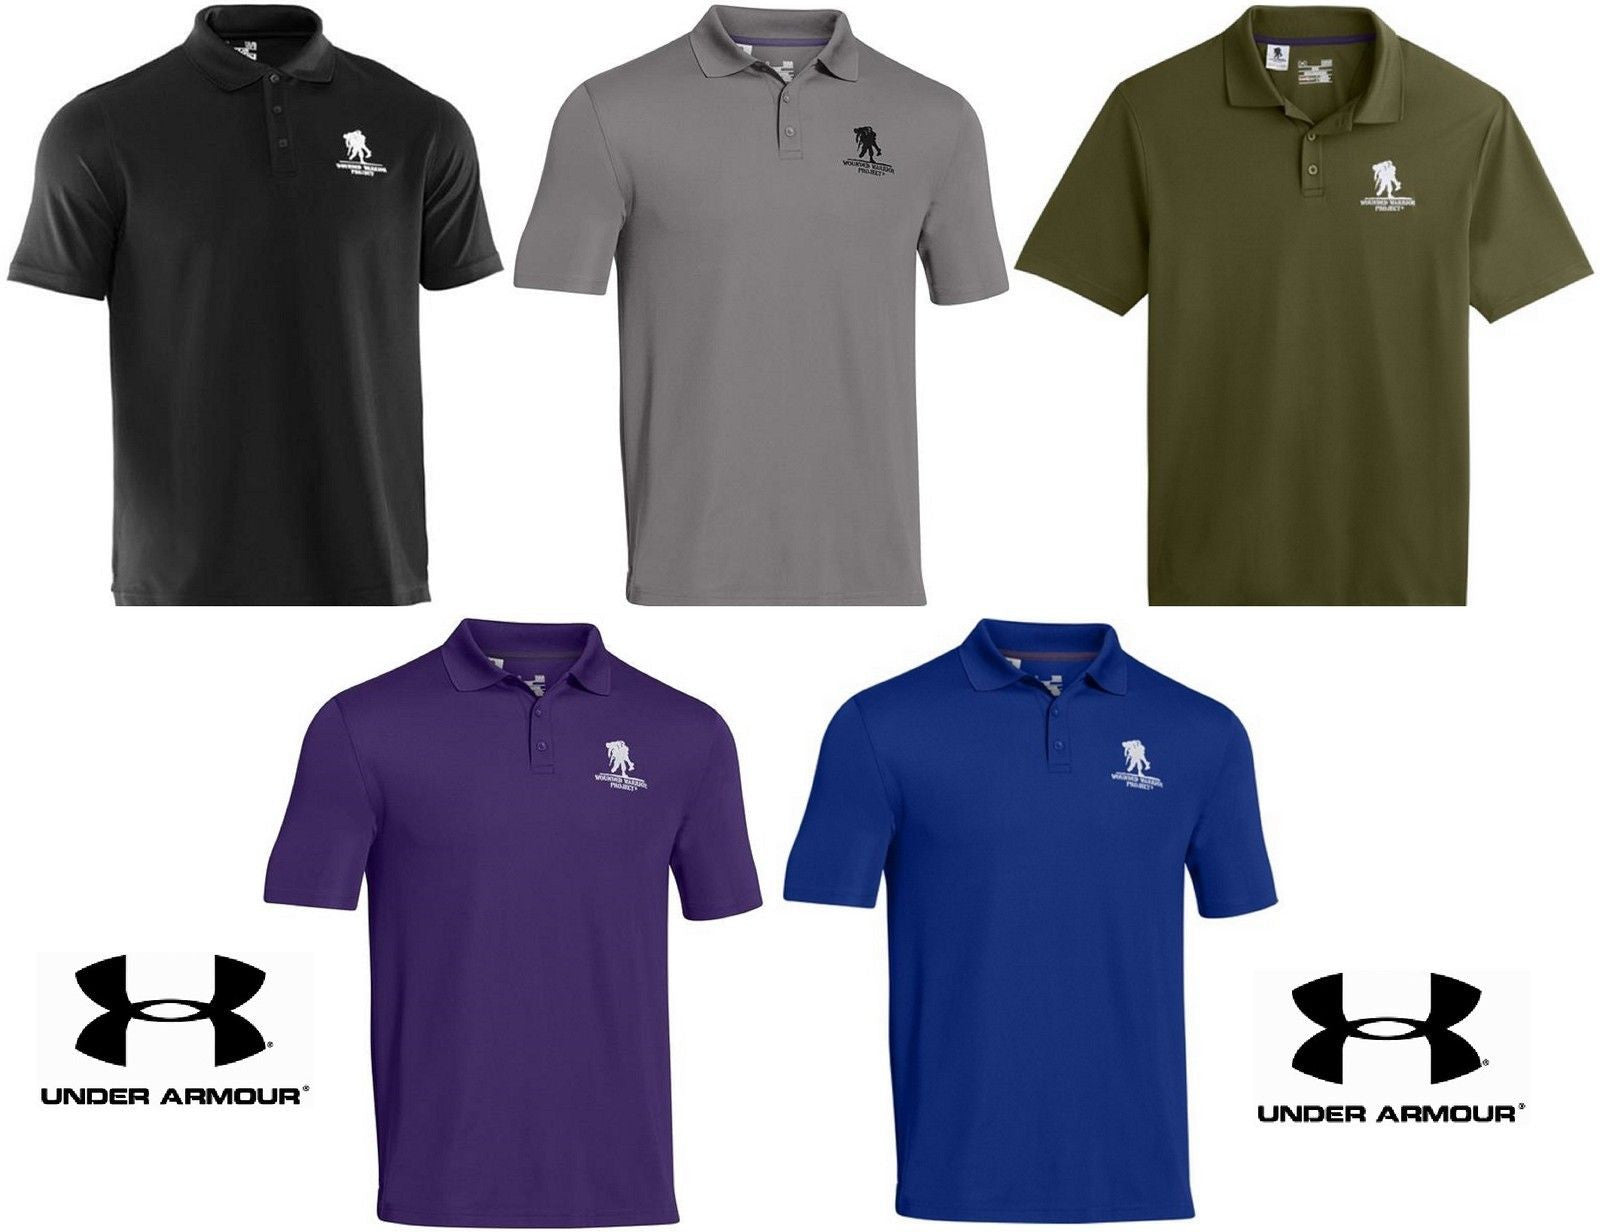 aa138043 Under Armour Performance Polo Shirt Wounded Warrior Project Collared Golf  Shirts.